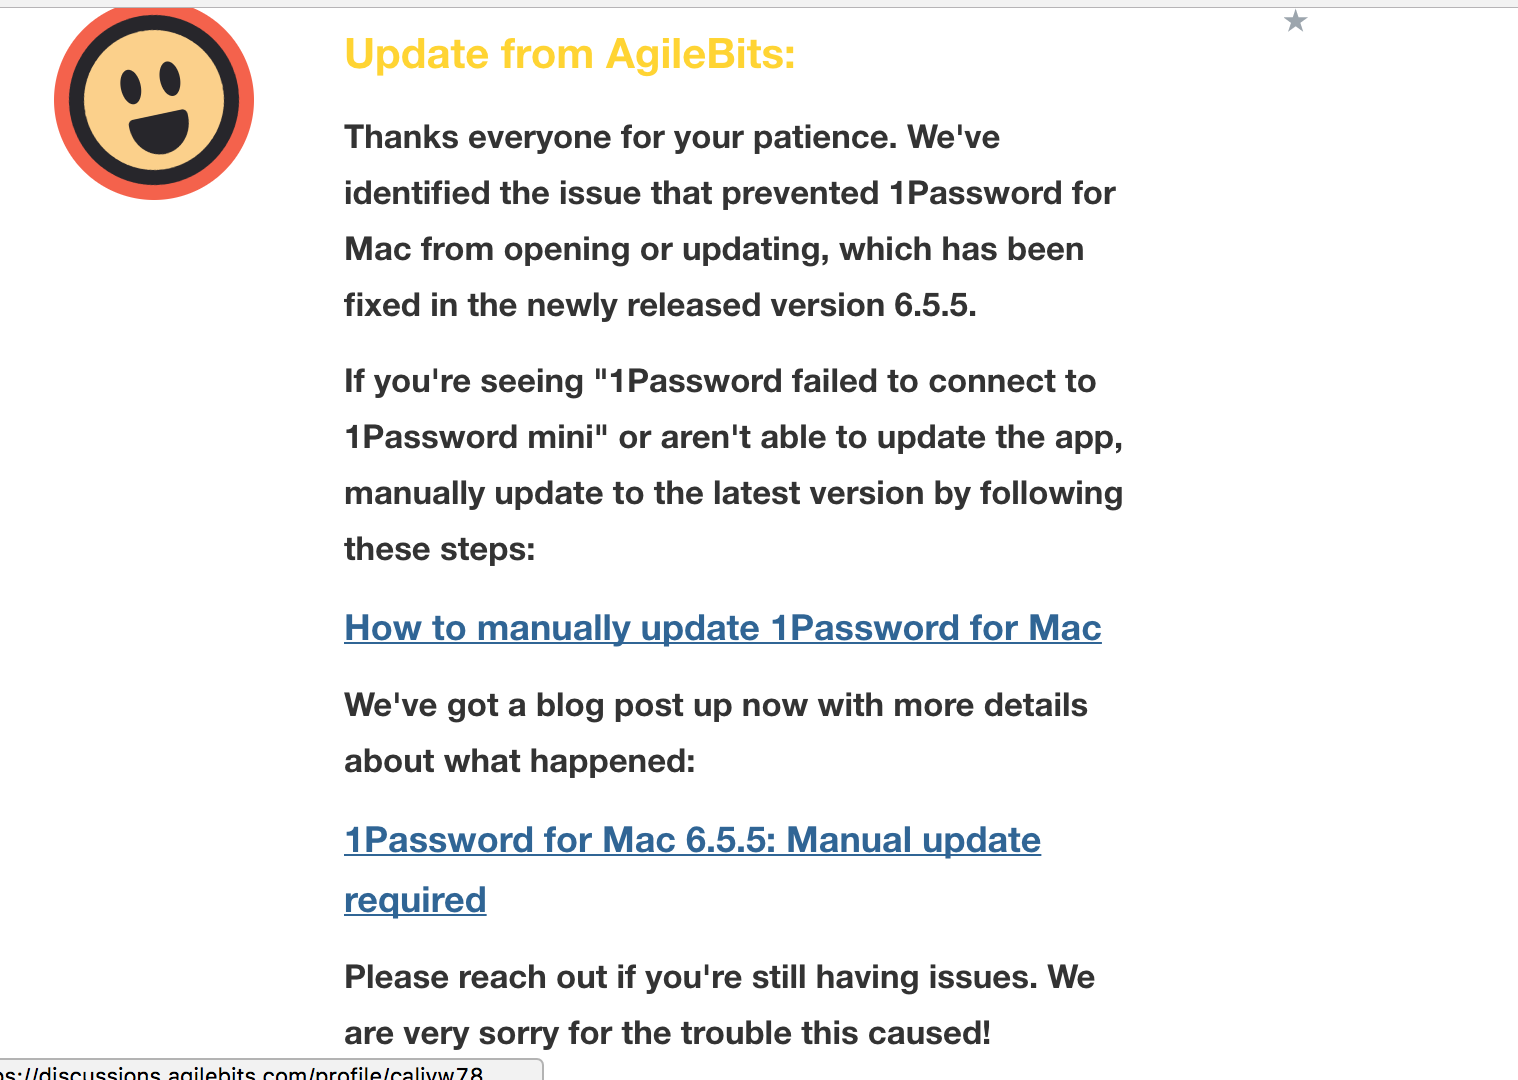 1password working to release patch to resolve the issue